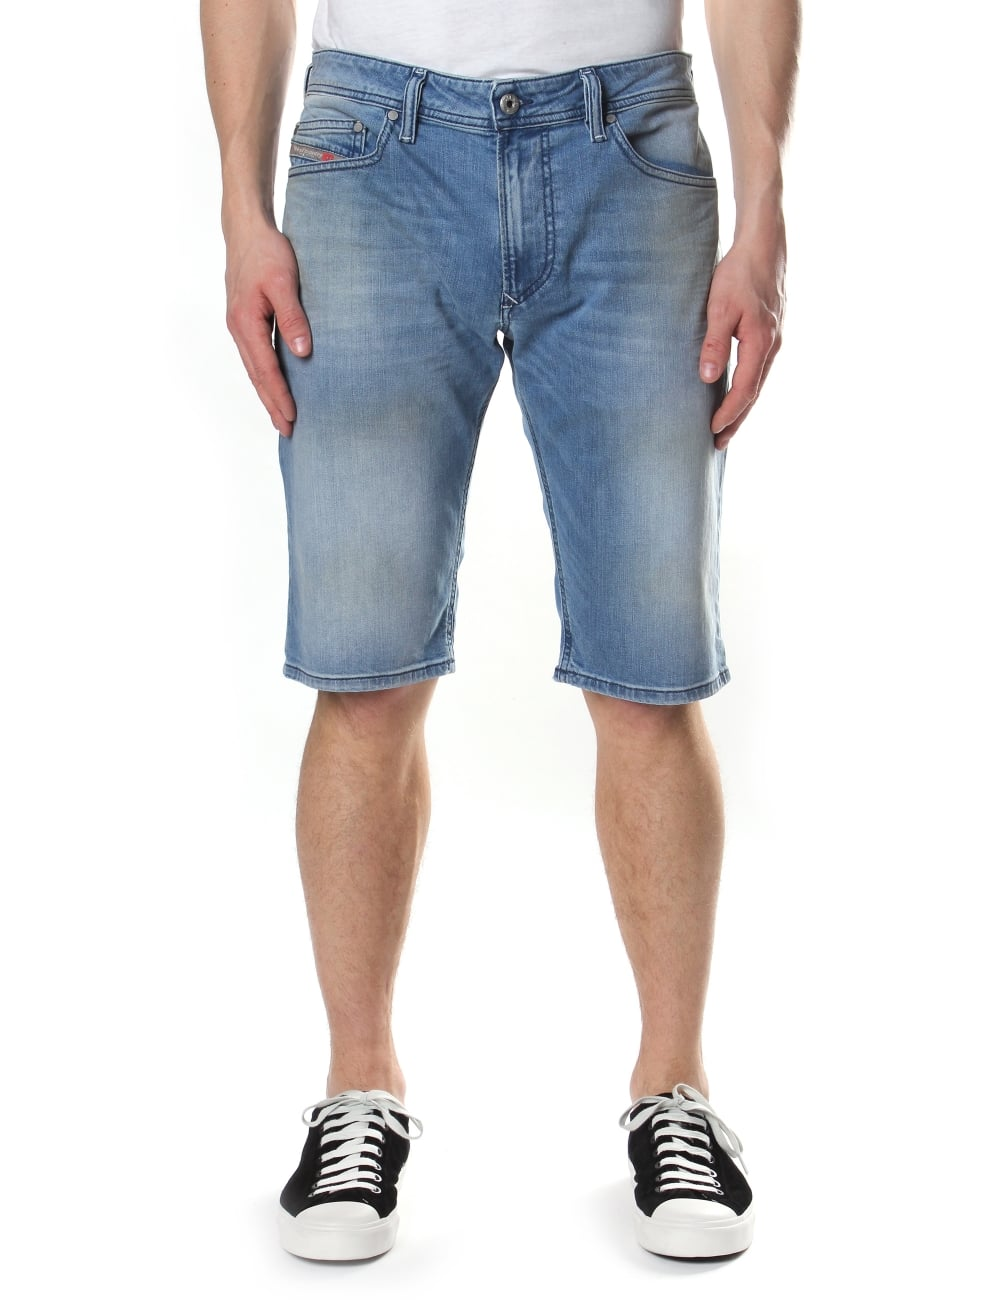 acb2f5e3d1 Diesel Tha Short 84CU Denim Shorts